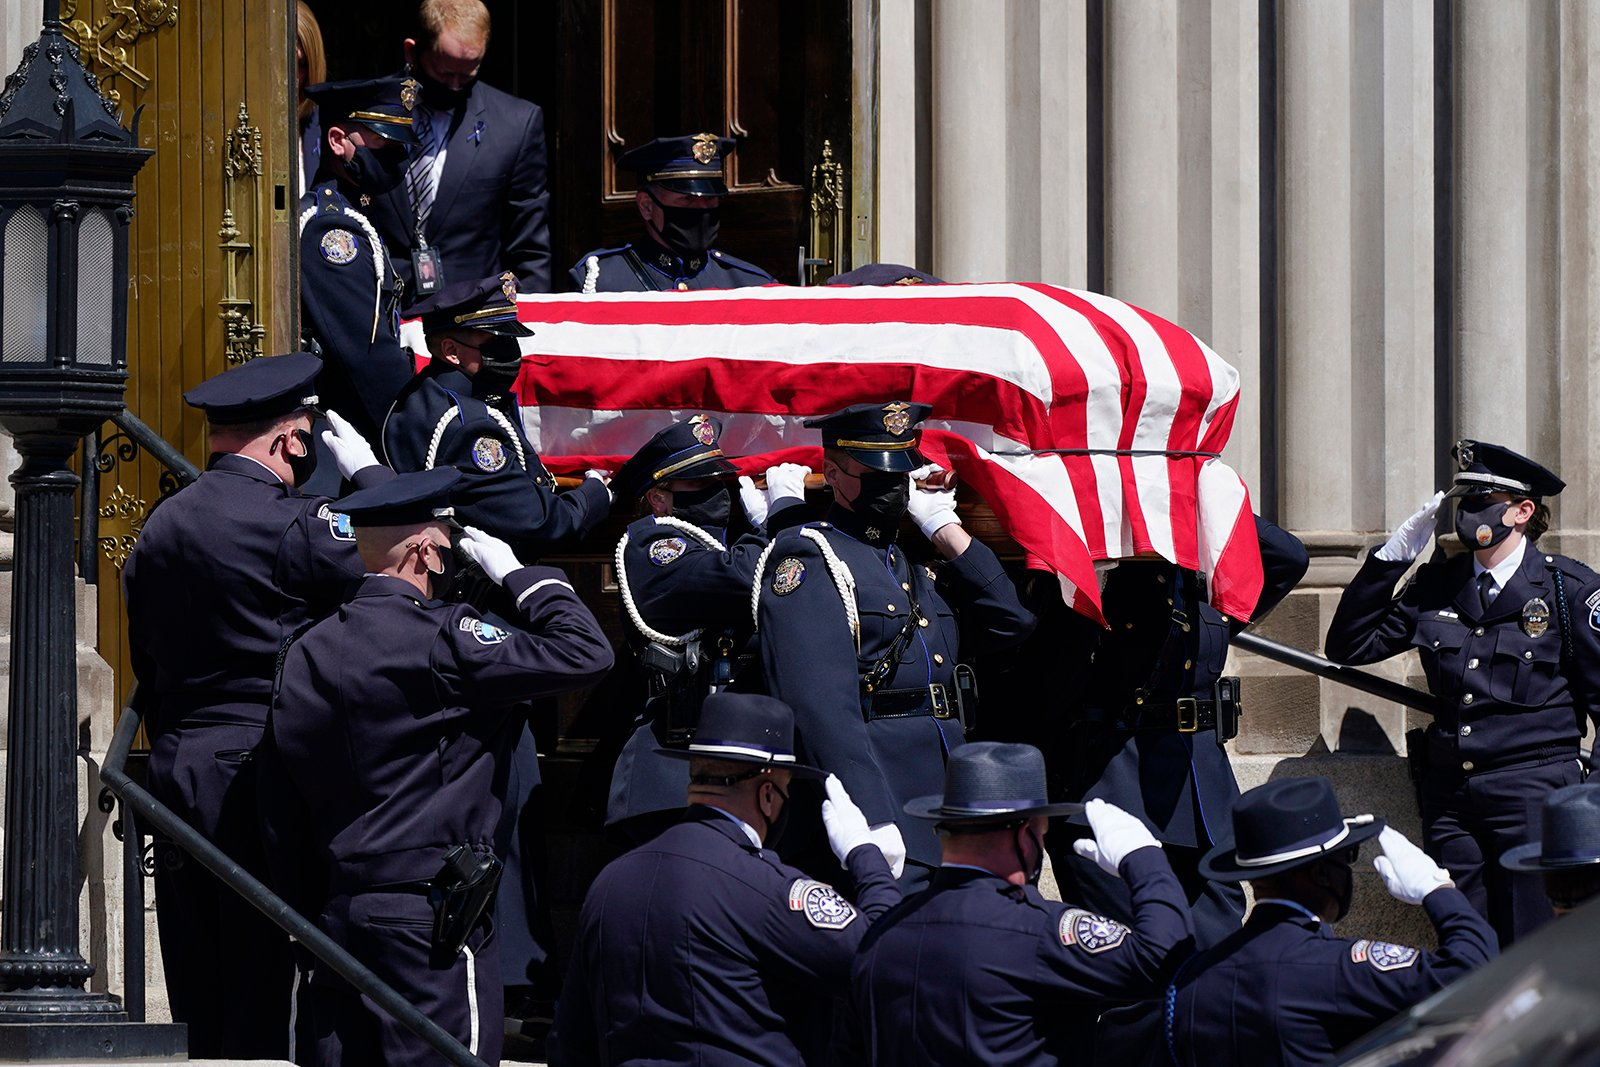 The casket carrying the body of fallen Boulder, Colo., Police Department officer Eric Talley is carried by a Denver Police honor guard to a waiting hearse after a service at the Cathedral Basilica of the Immaculate Conception, Monday, March 29, 2021, in Denver. Talley and nine other people were killed on Monday, March 22, during a mass shooting at a grocery store in Boulder. (AP Photo/David Zalubowski)